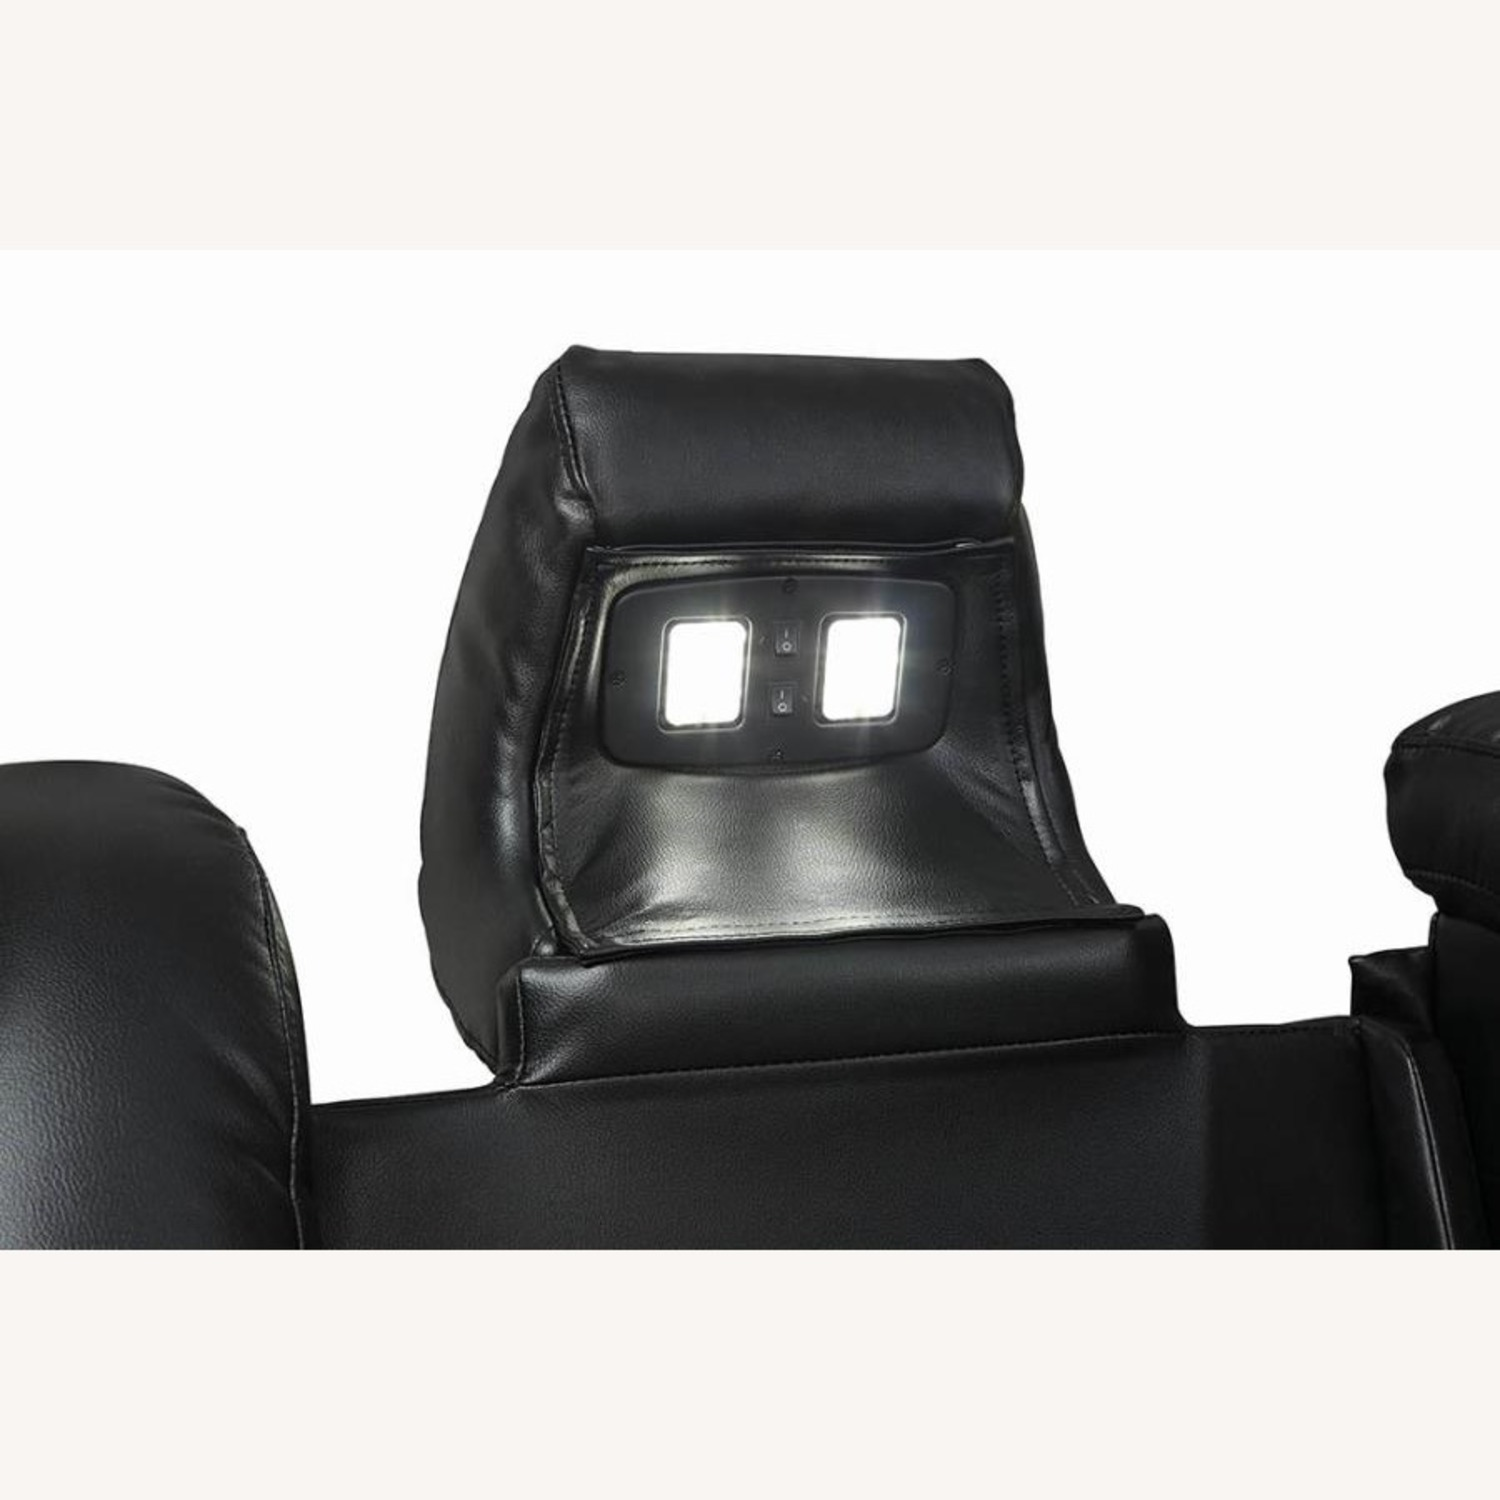 Power Sofa In Black Leather W/ LED Cupholder - image-6